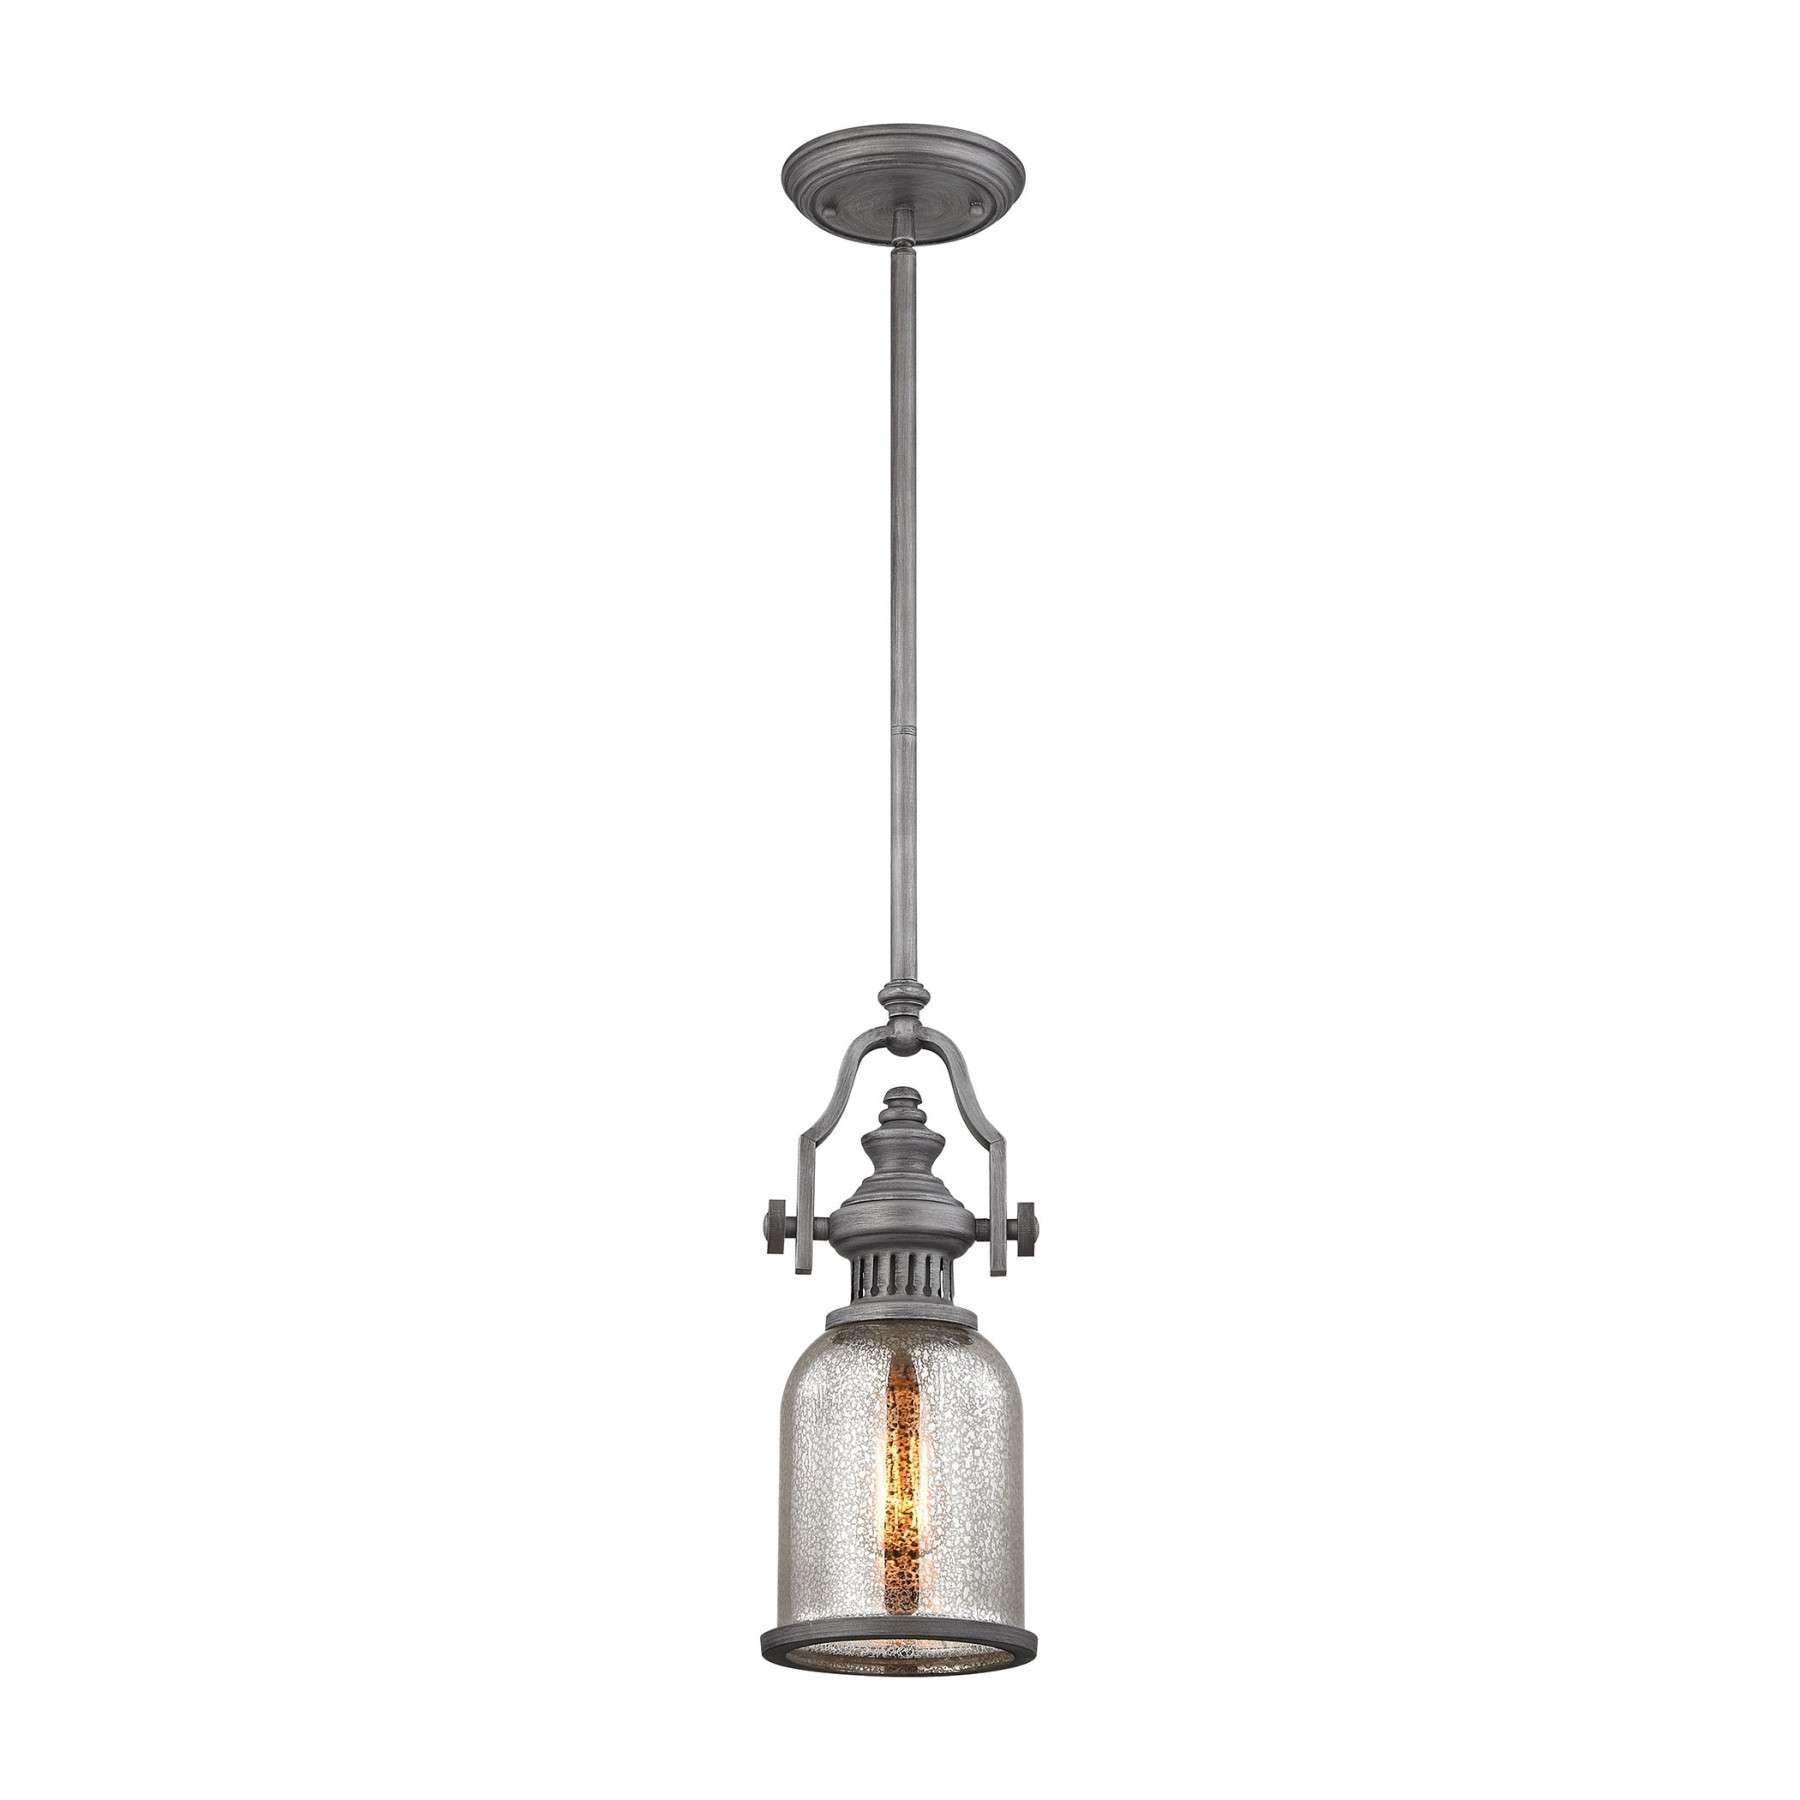 Chadwick 1 Light Pendant In Weathered Zinc